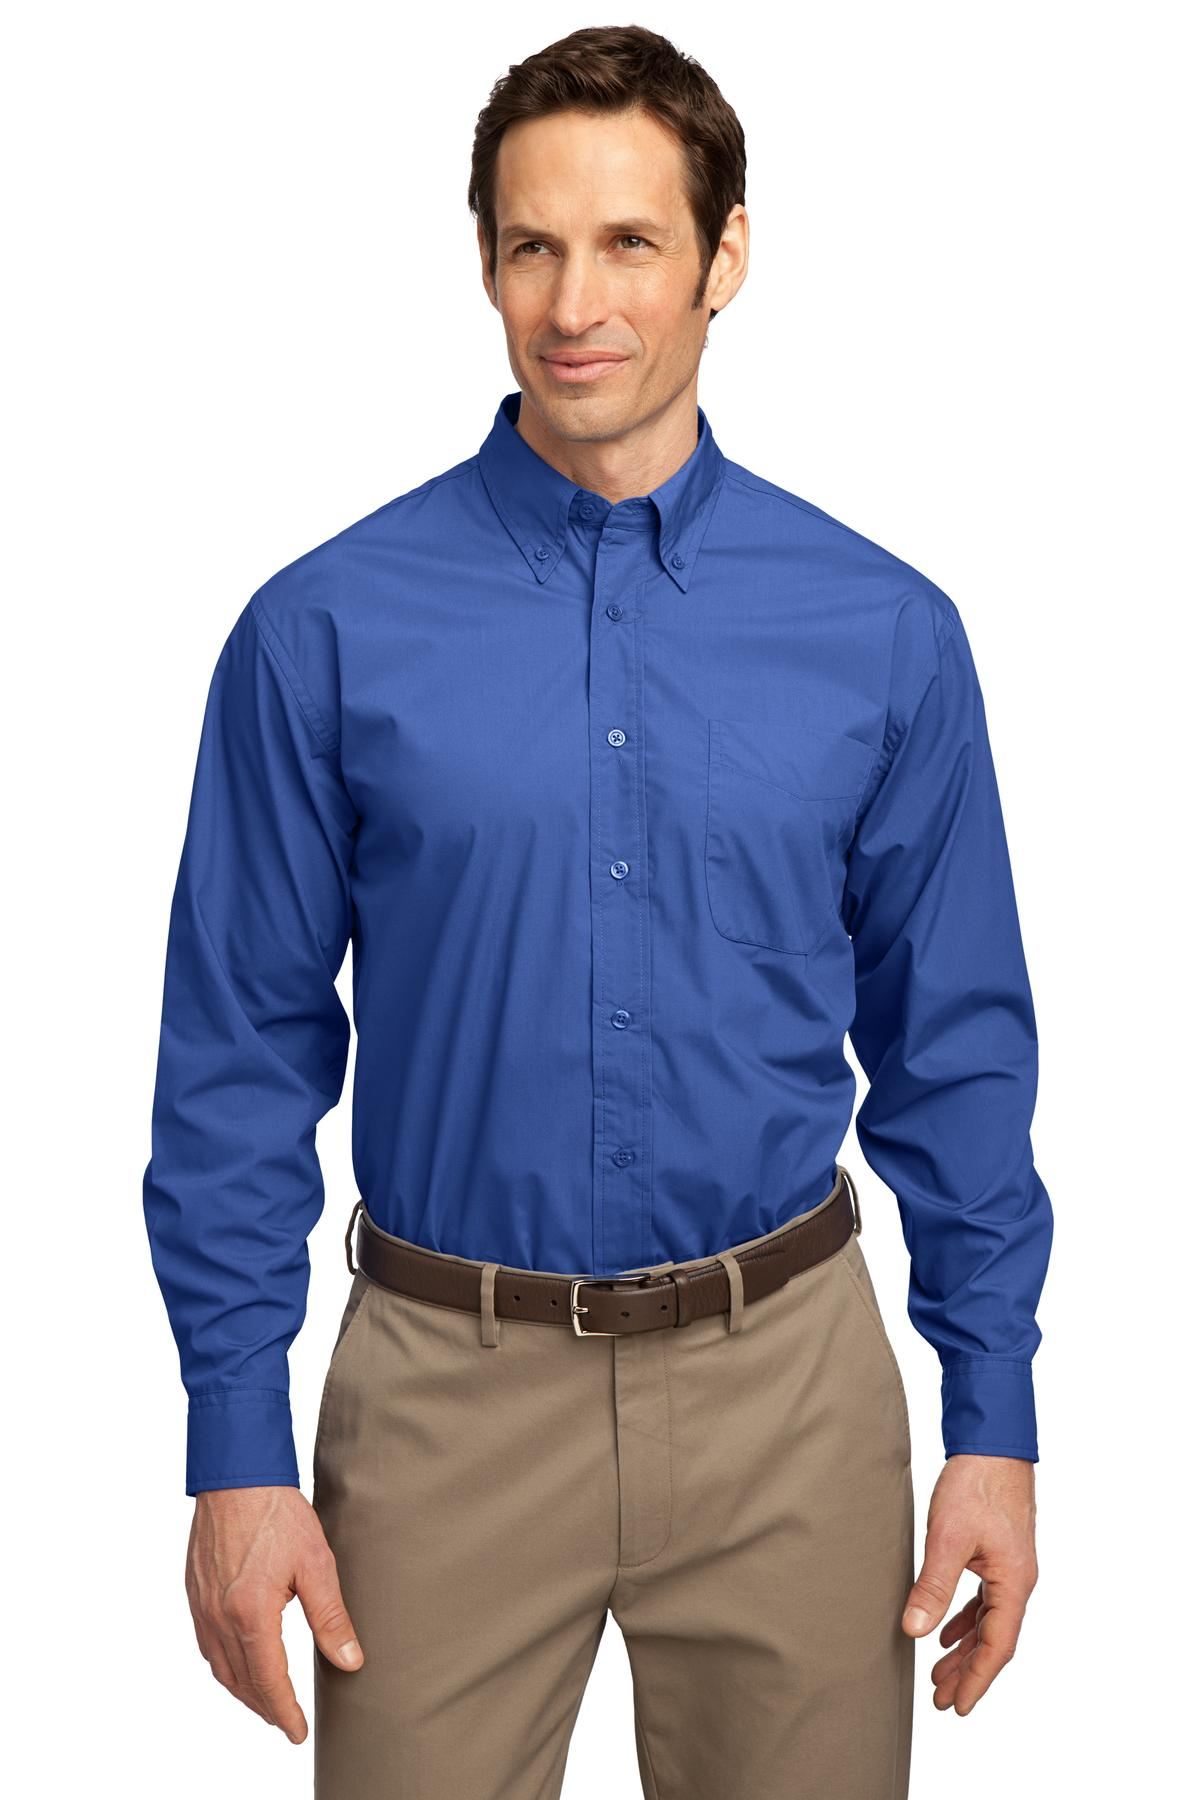 Woven-Shirts-Easy-Care-42